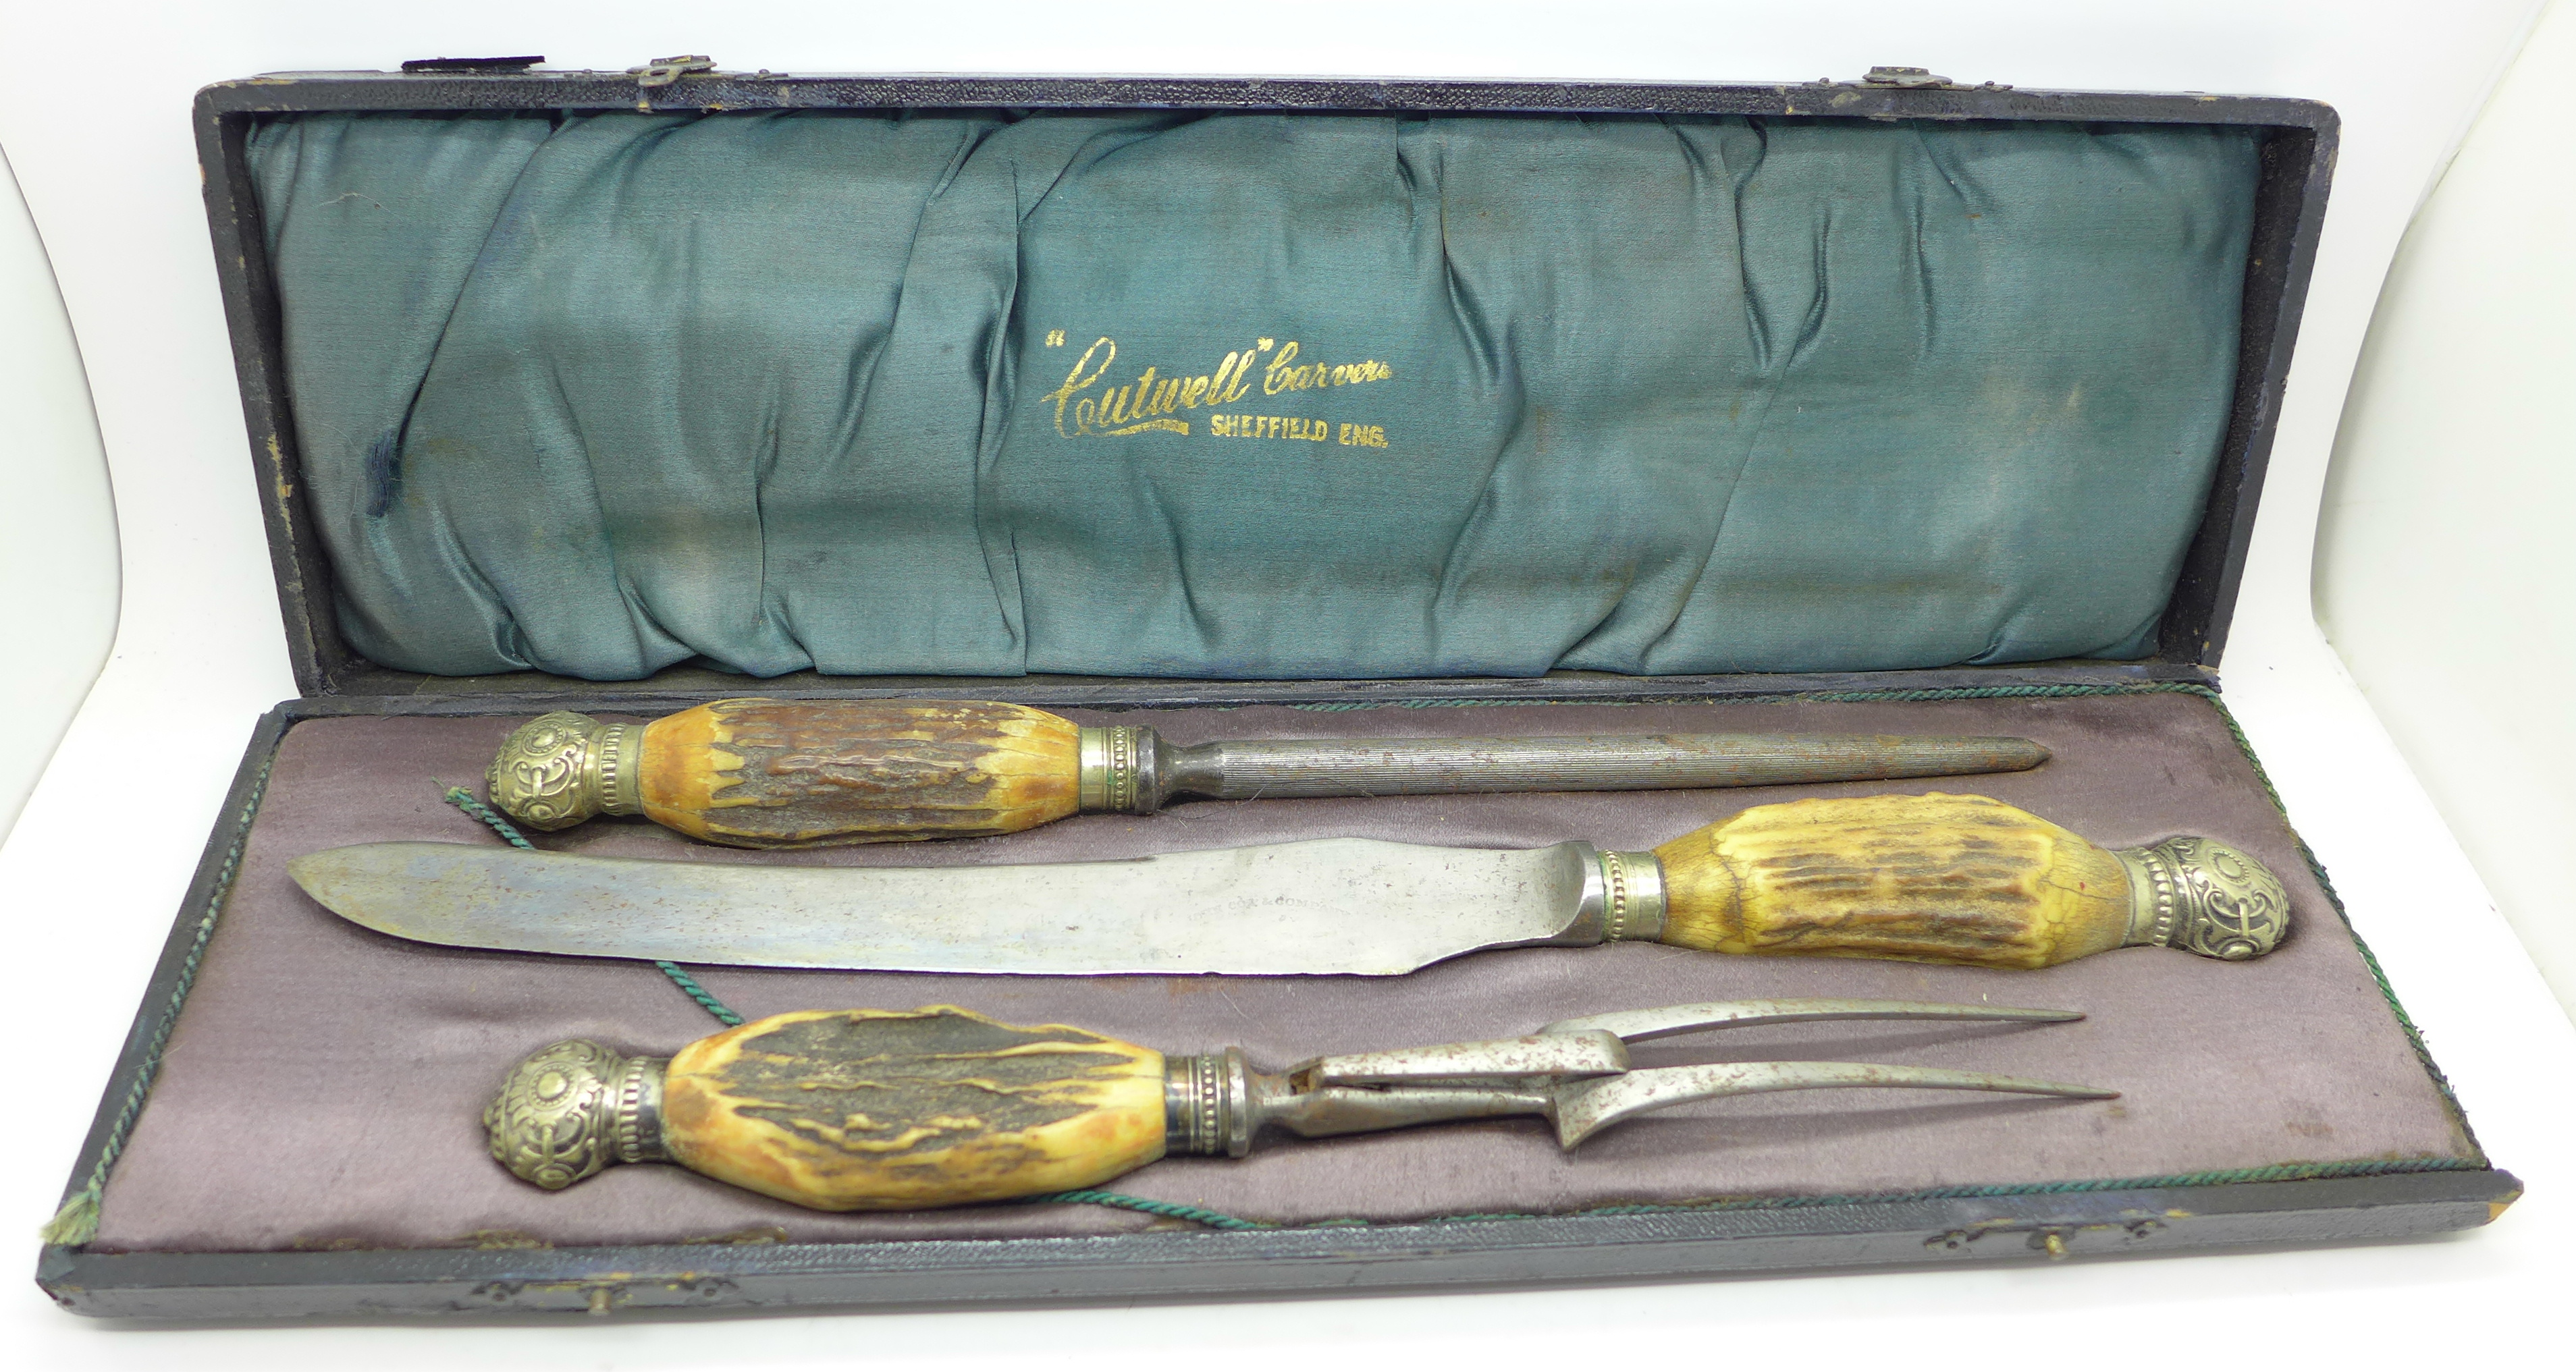 Lot 636 - A three piece antler handle carving set, 'Cutwell Carvers',